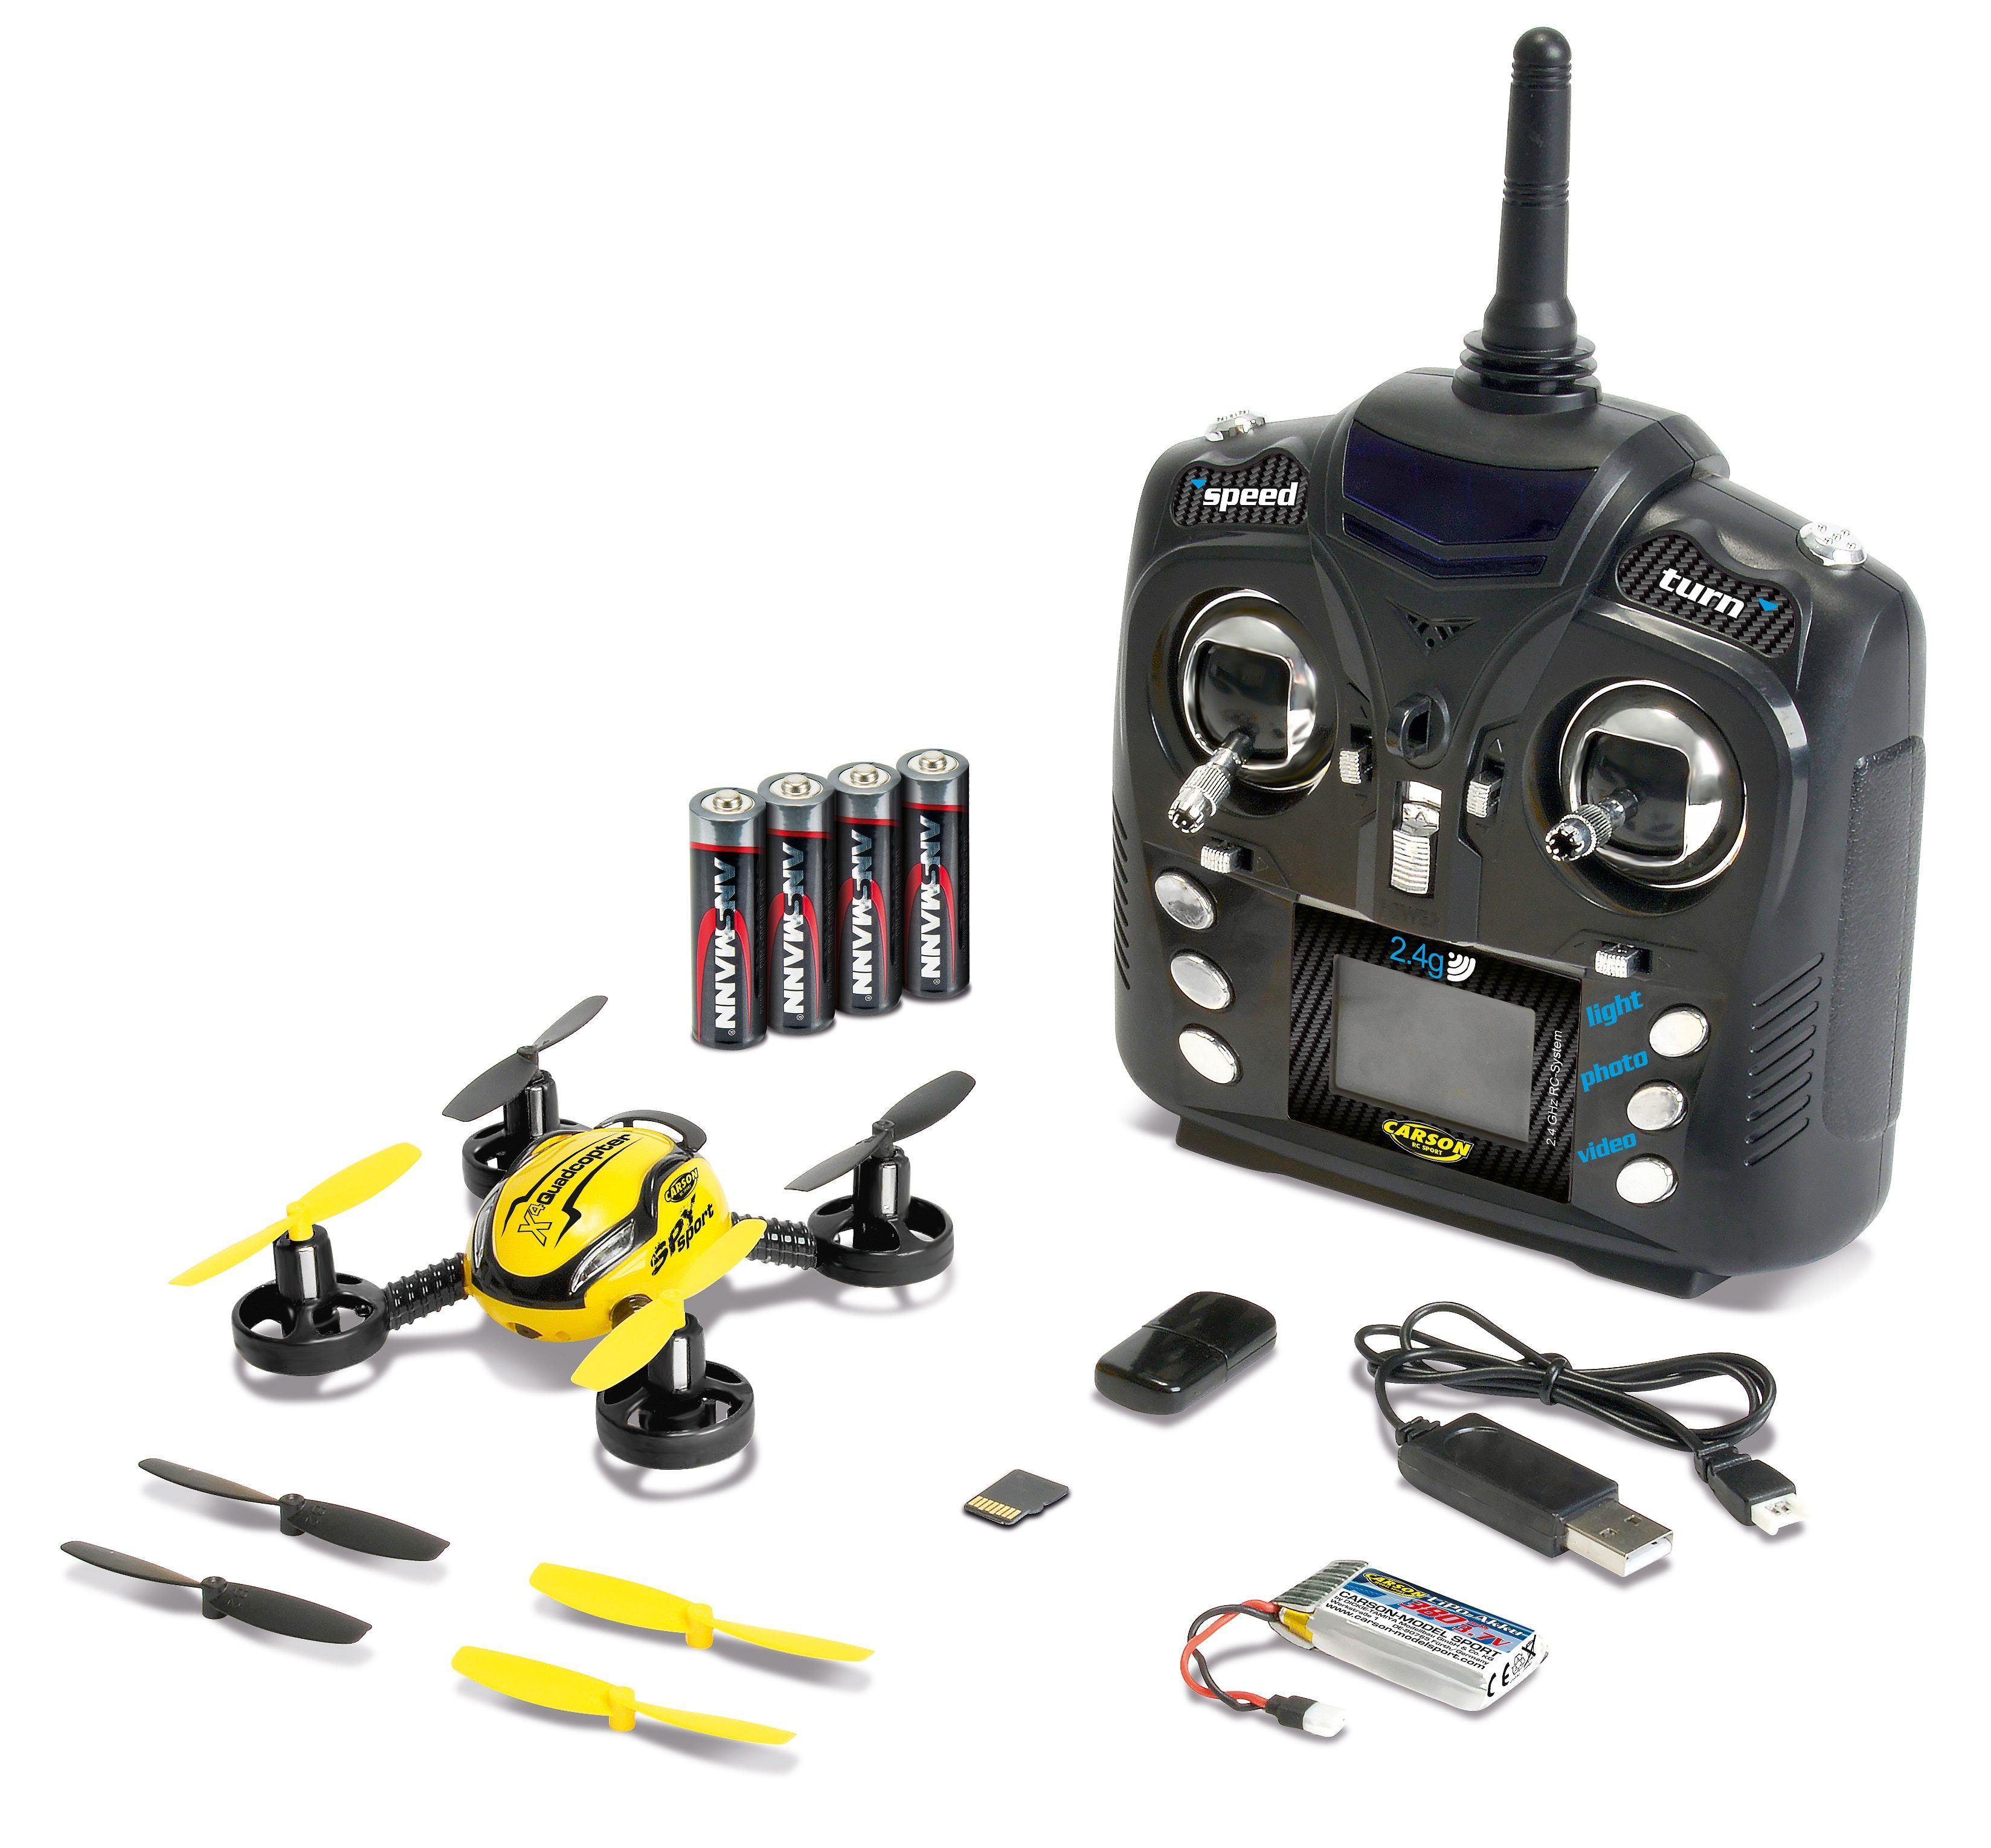 Carson RC-Komplett-Set, »X4 Quadcopter SPY sport 2,4 GHz RTF«